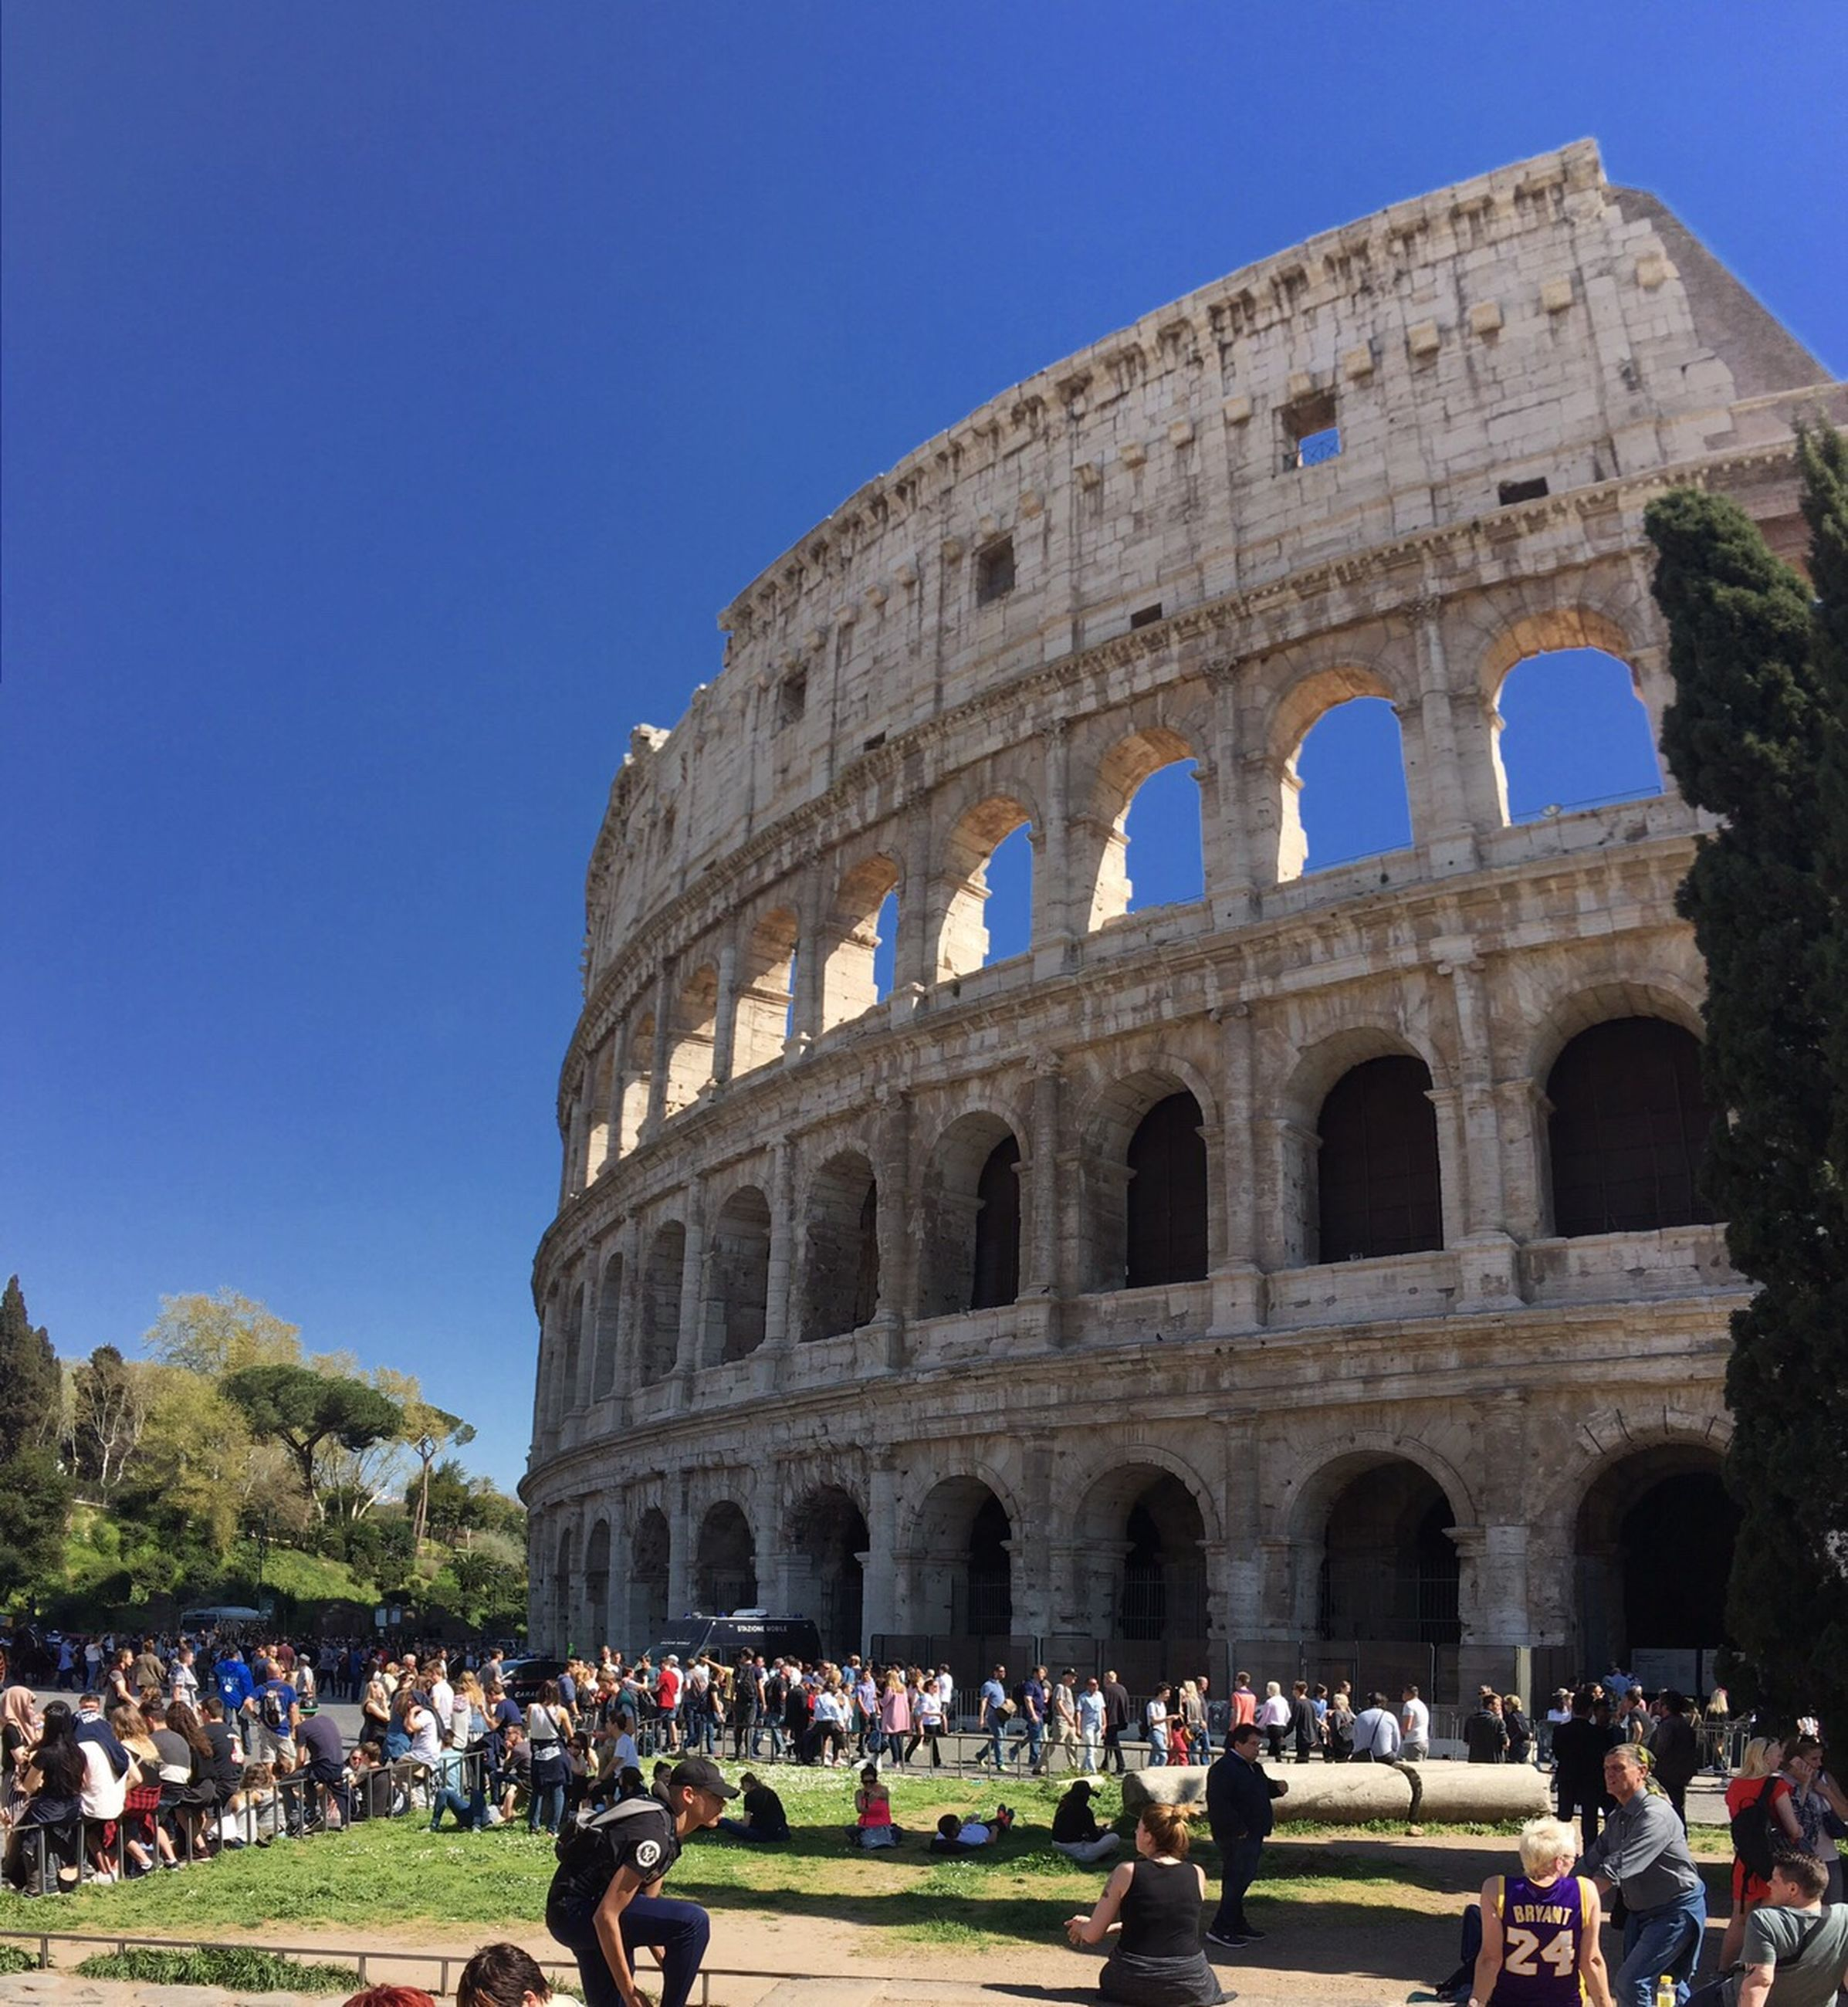 tourism, architecture, history, real people, travel destinations, tourist, blue, travel, built structure, old ruin, ancient, amphitheater, lifestyles, the past, building exterior, large group of people, low angle view, cultures, outdoors, city, sky, women, leisure activity, men, ancient civilization, day, crowd, people